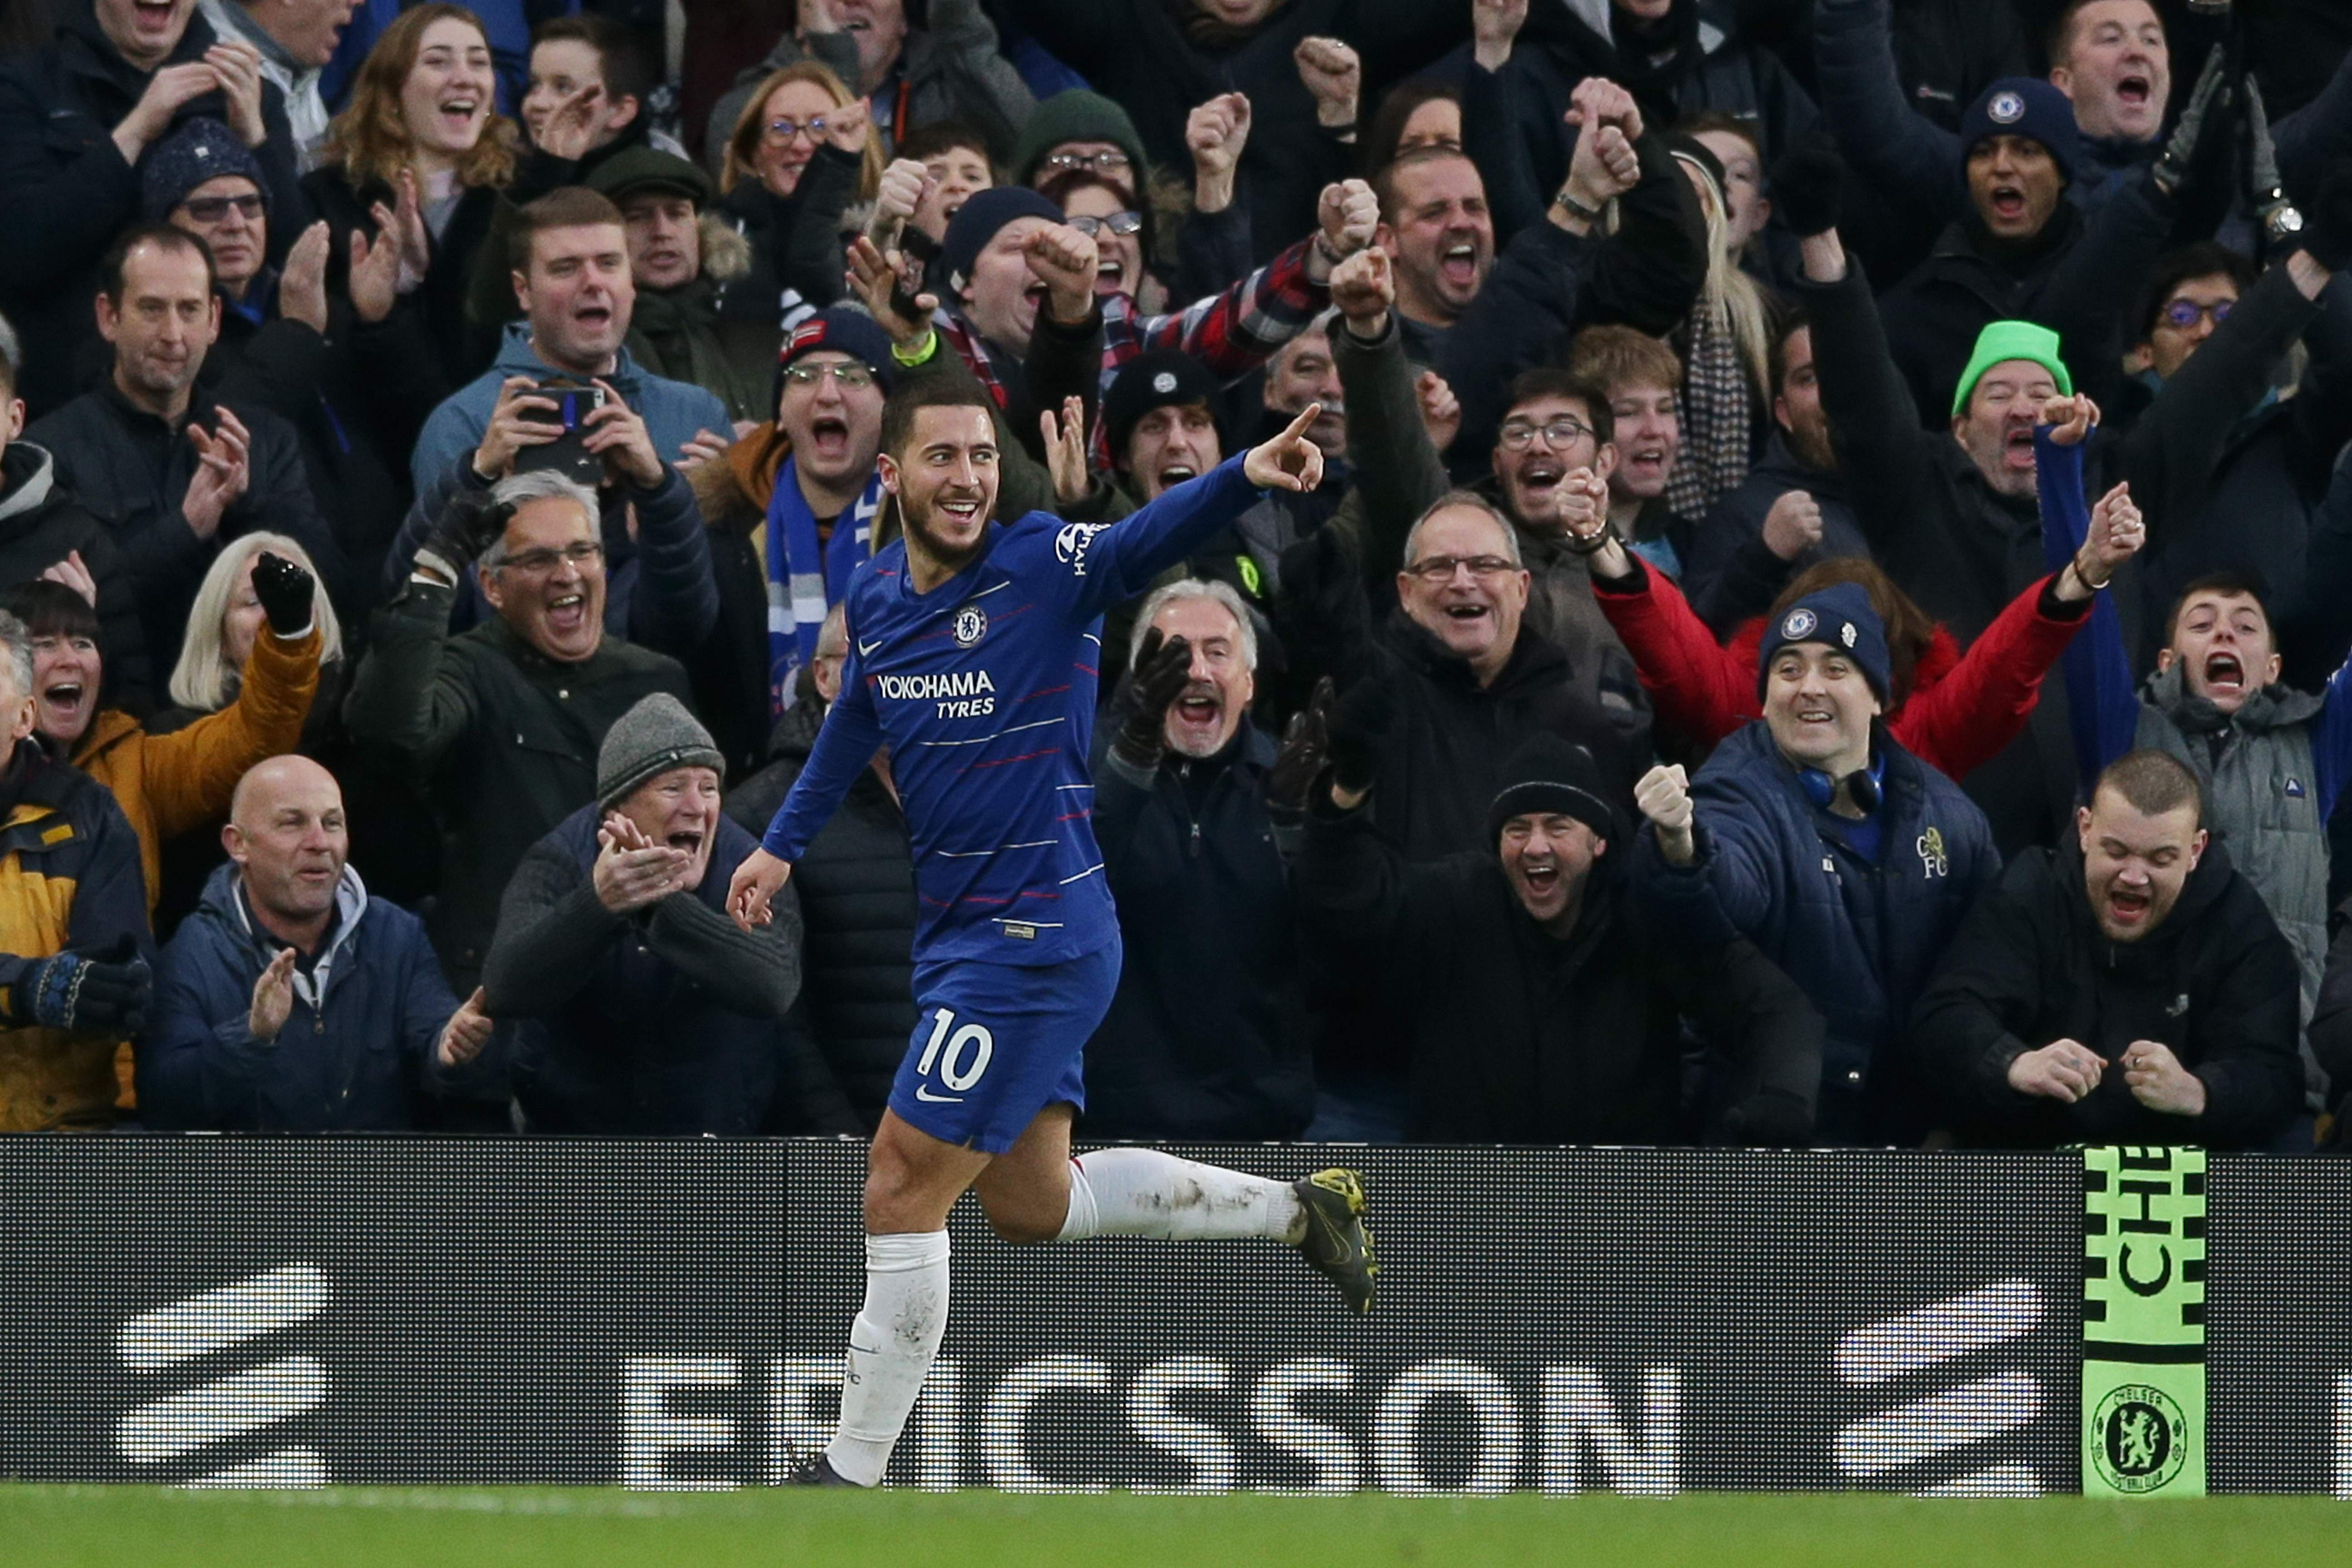 Chelsea's Belgian midfielder Eden Hazard celebrates scoring their third goal during the English Premier League football match between Chelsea and Huddersfield Town at Stamford Bridge in London on February 2, 2019. (Photo by Daniel LEAL-OLIVAS / AFP) / RESTRICTED TO EDITORIAL USE. No use with unauthorized audio, video, data, fixture lists, club/league logos or 'live' services. Online in-match use limited to 120 images. An additional 40 images may be used in extra time. No video emulation. Social media in-match use limited to 120 images. An additional 40 images may be used in extra time. No use in betting publications, games or single club/league/player publications. /